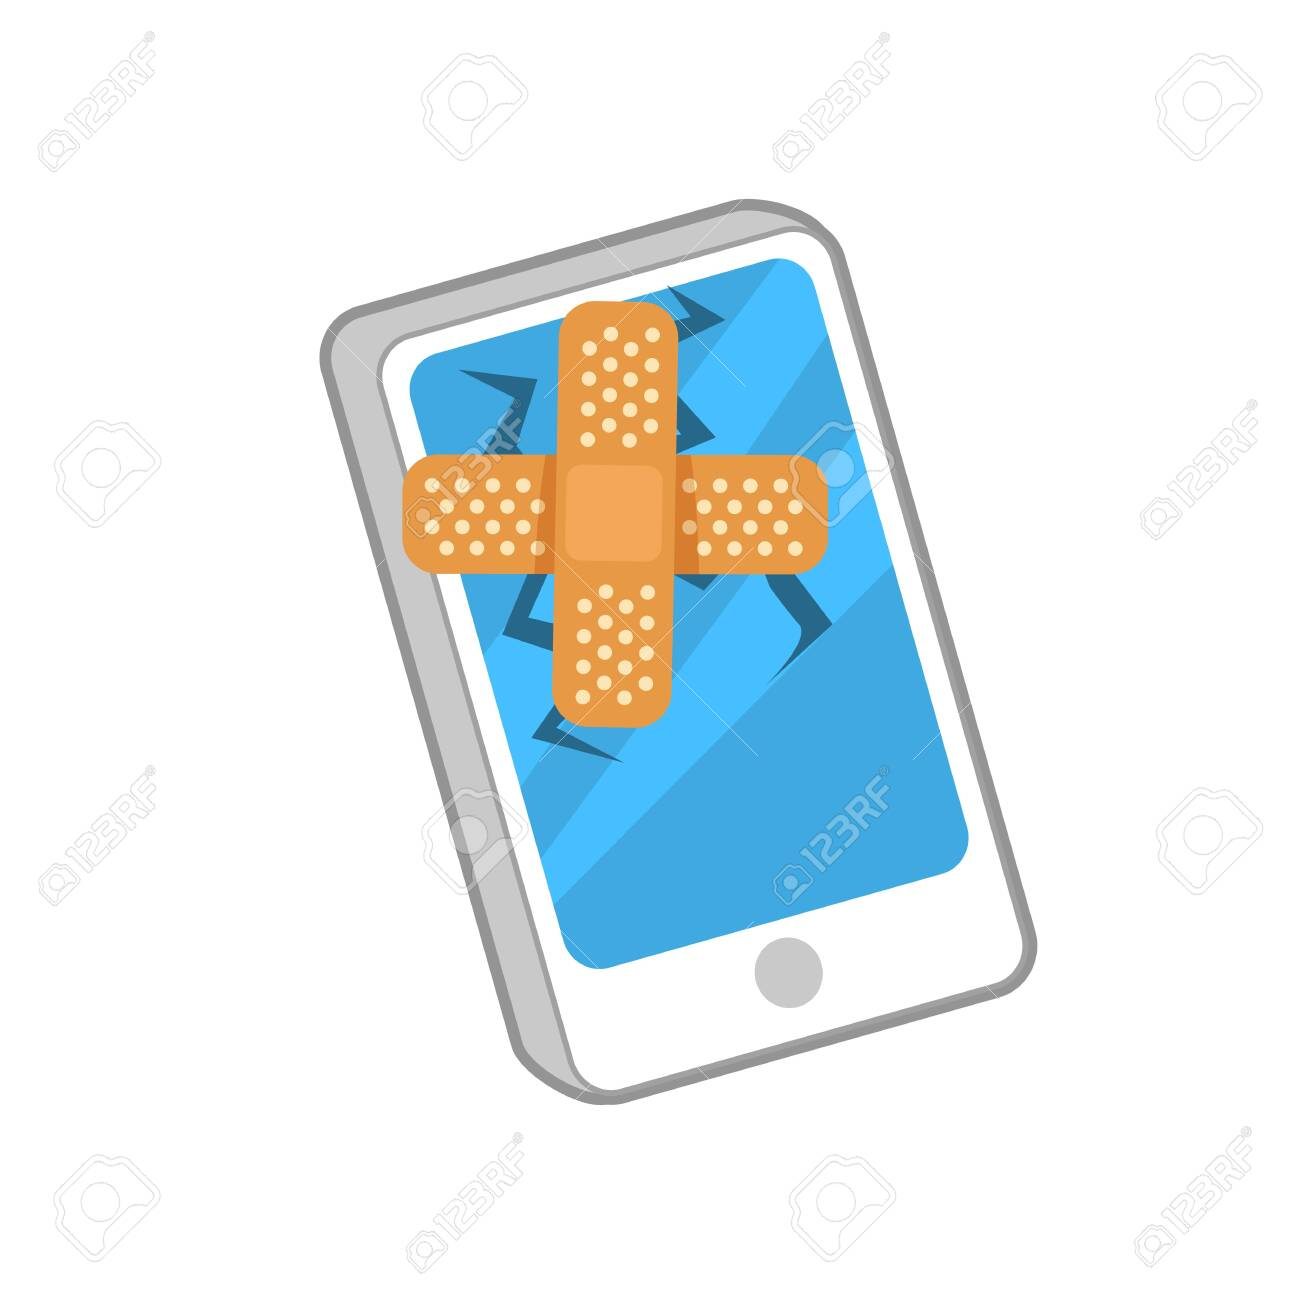 Vector illustration of smartphone with broken screen and plaster on it. - 130346806